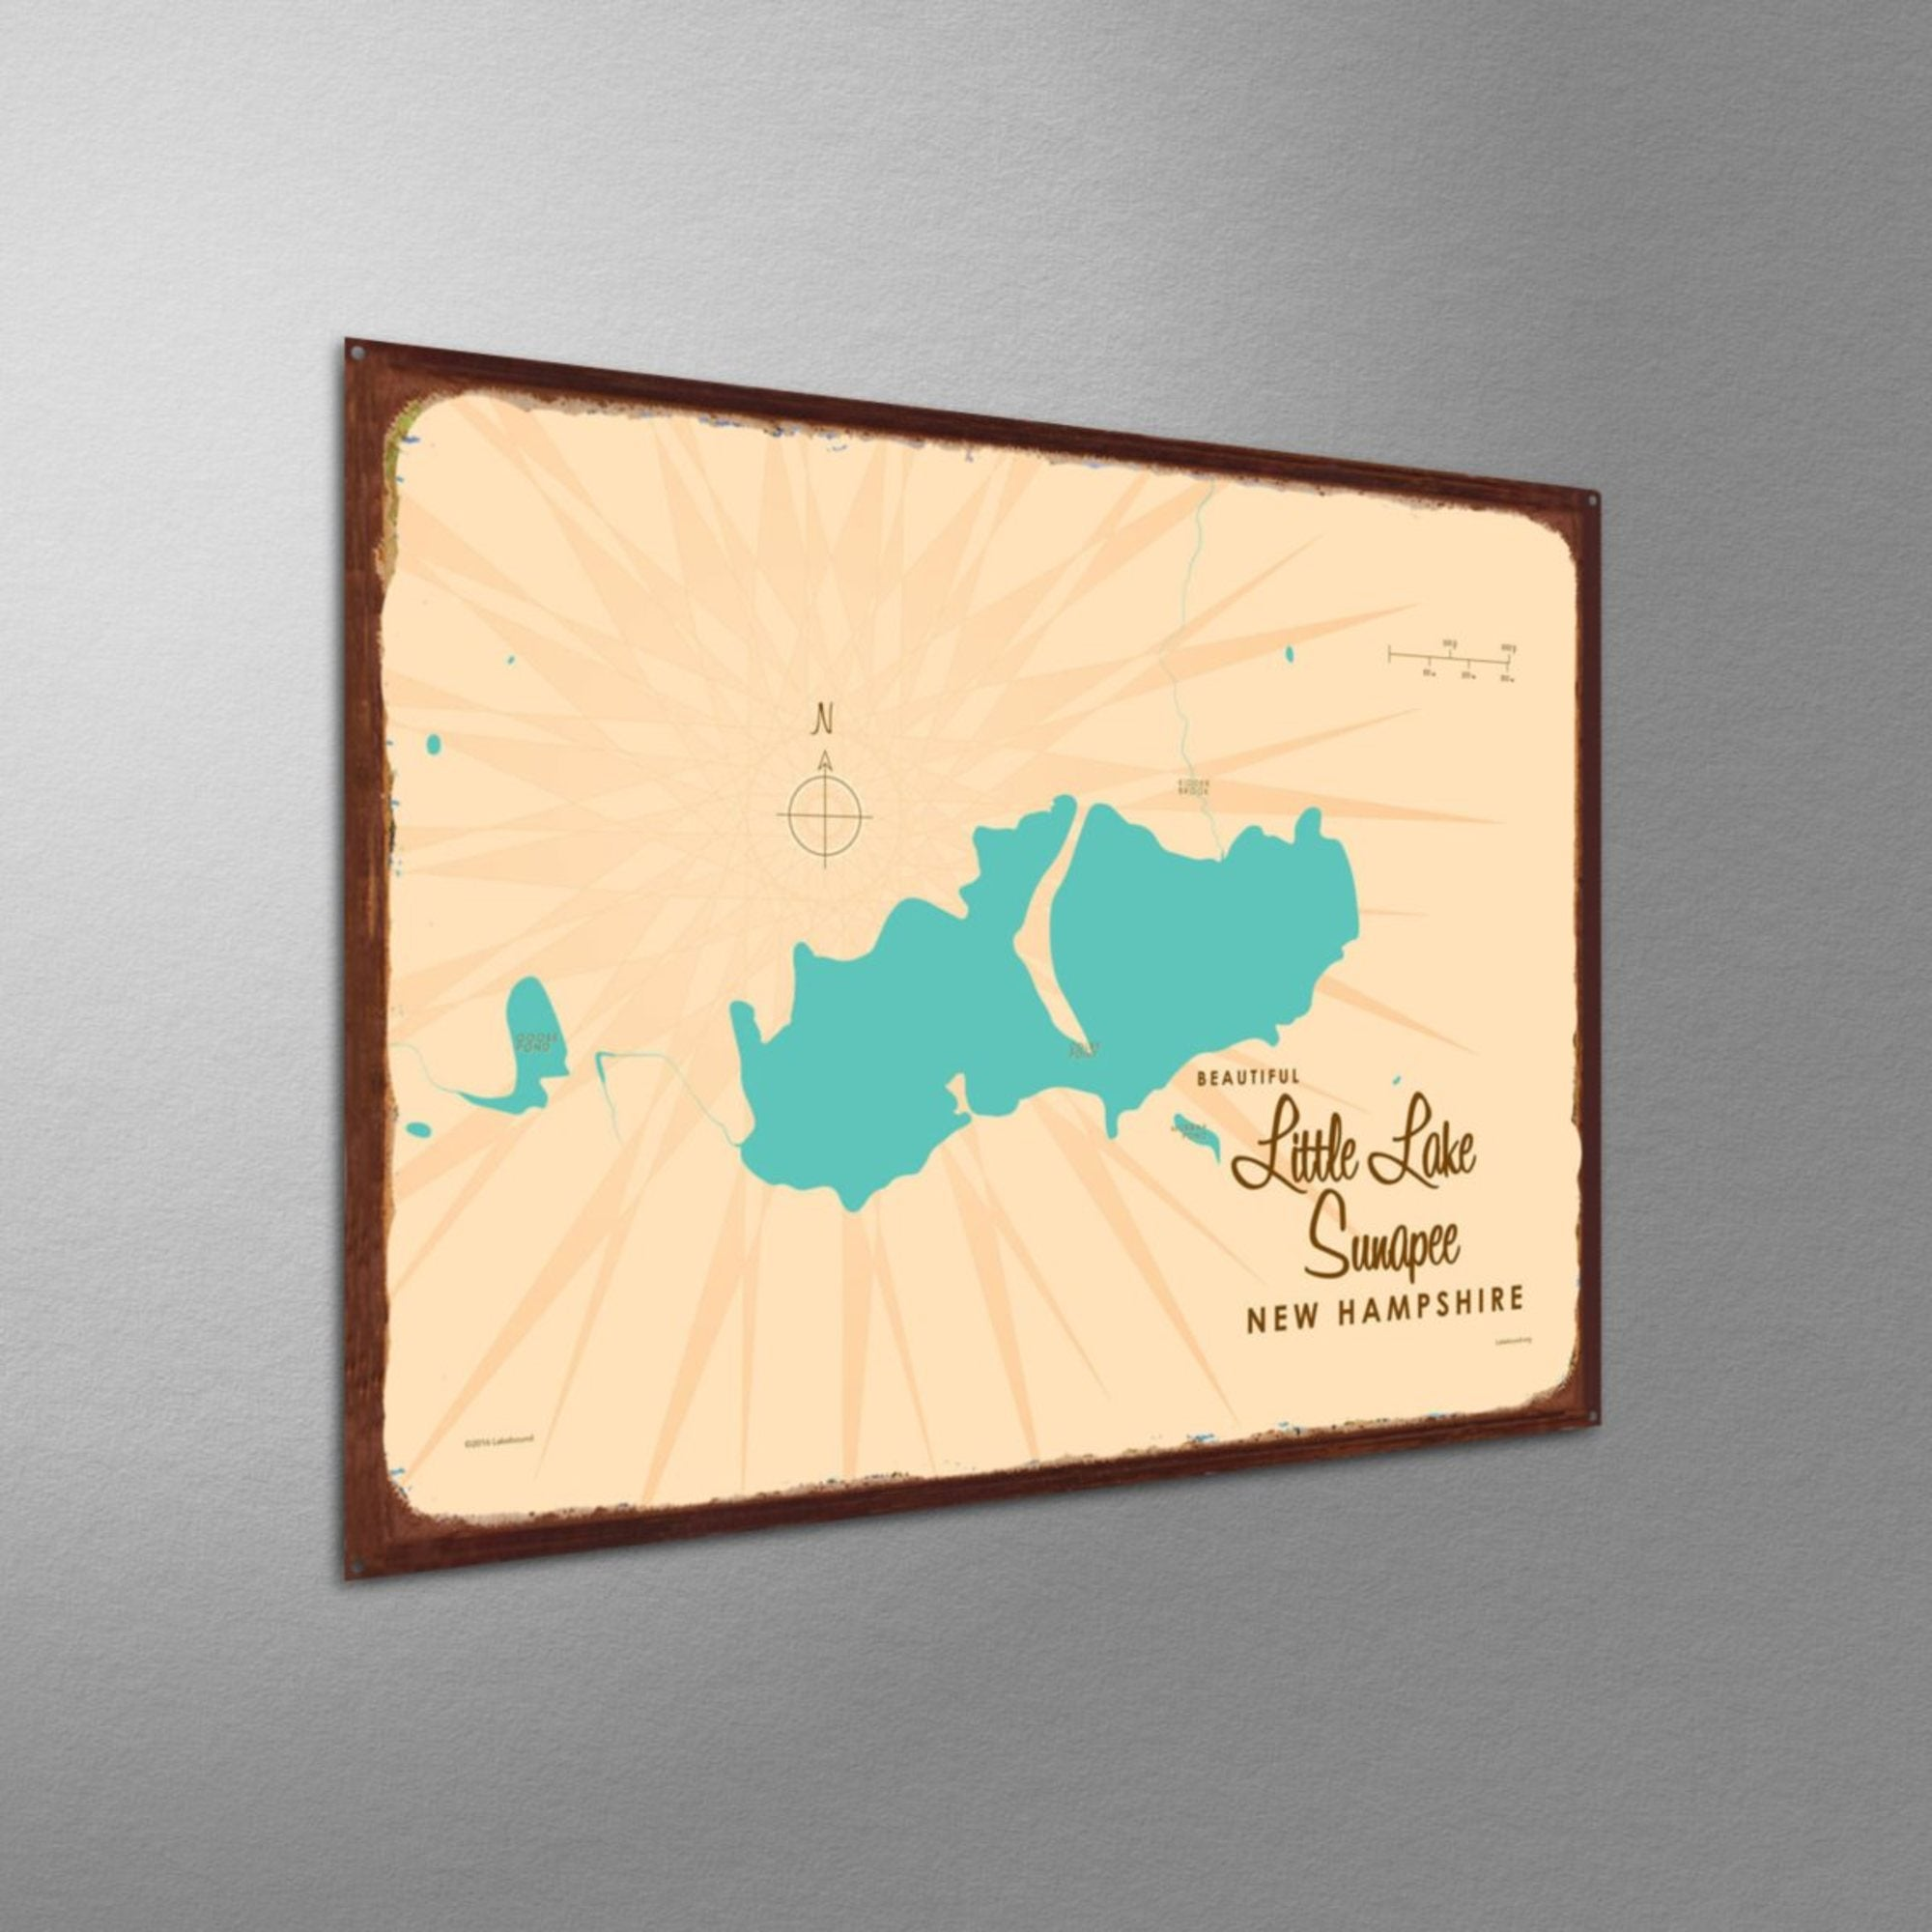 Little Lake Sunapee New Hampshire, Rustic Metal Sign Map Art